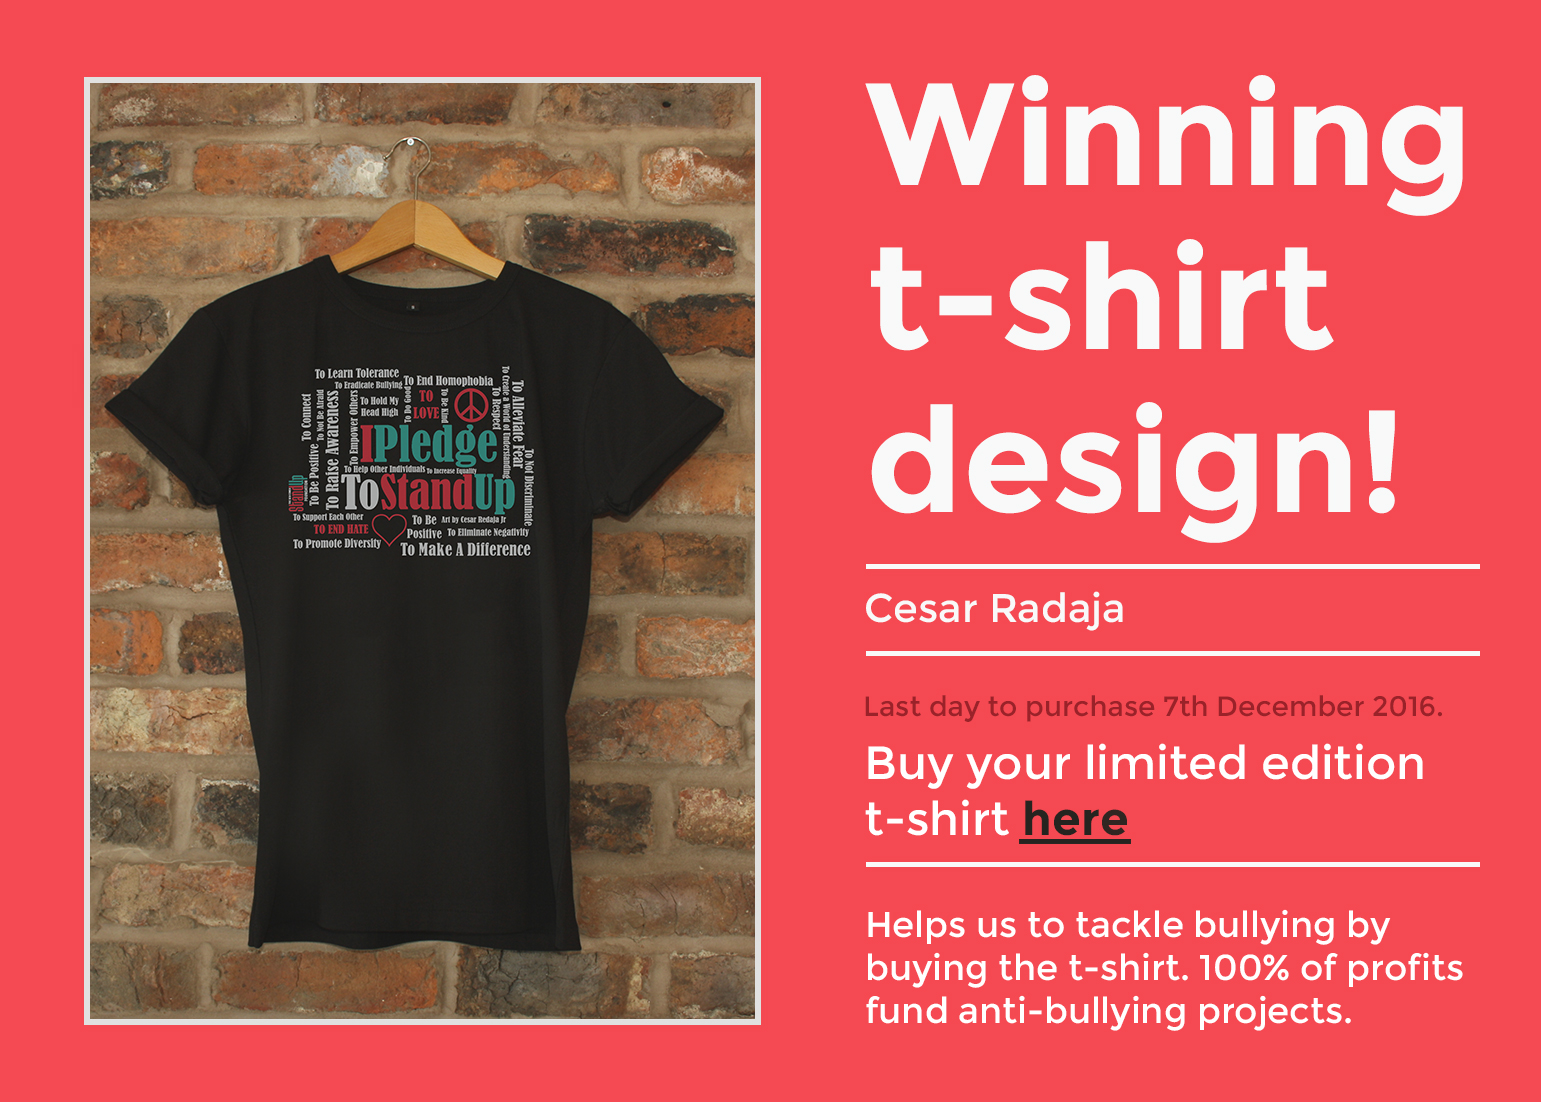 Winner t-shirt design! Cesar Radaja. Buy your limited edition t-shirt here. Last day to purchase 7th December 2016. Helps us to tackle bullying by buying the t-shirt. 100% of profits fund anti-bullying projects.